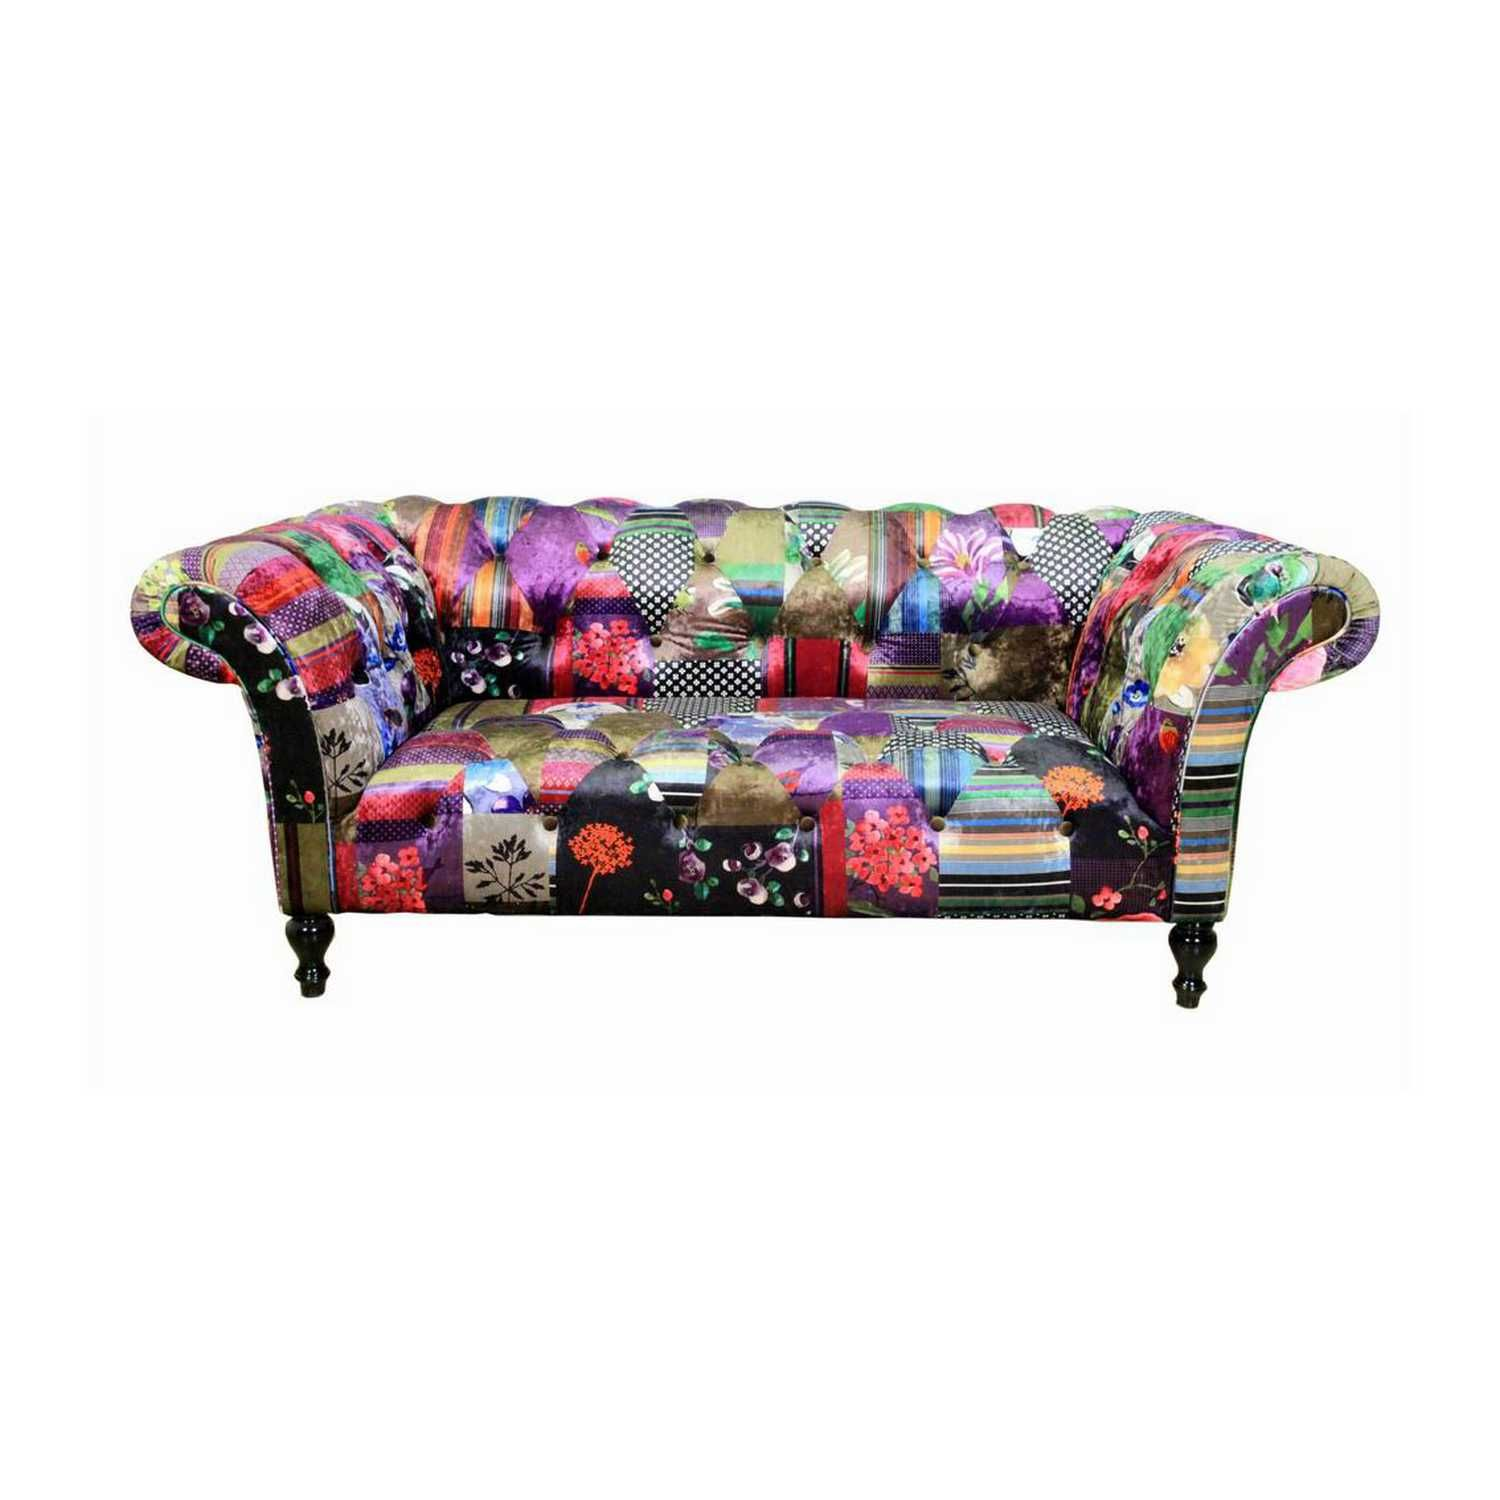 The Range Living Room Furniture Modica Patchwork Sofa Furniture The Range Home Living Room